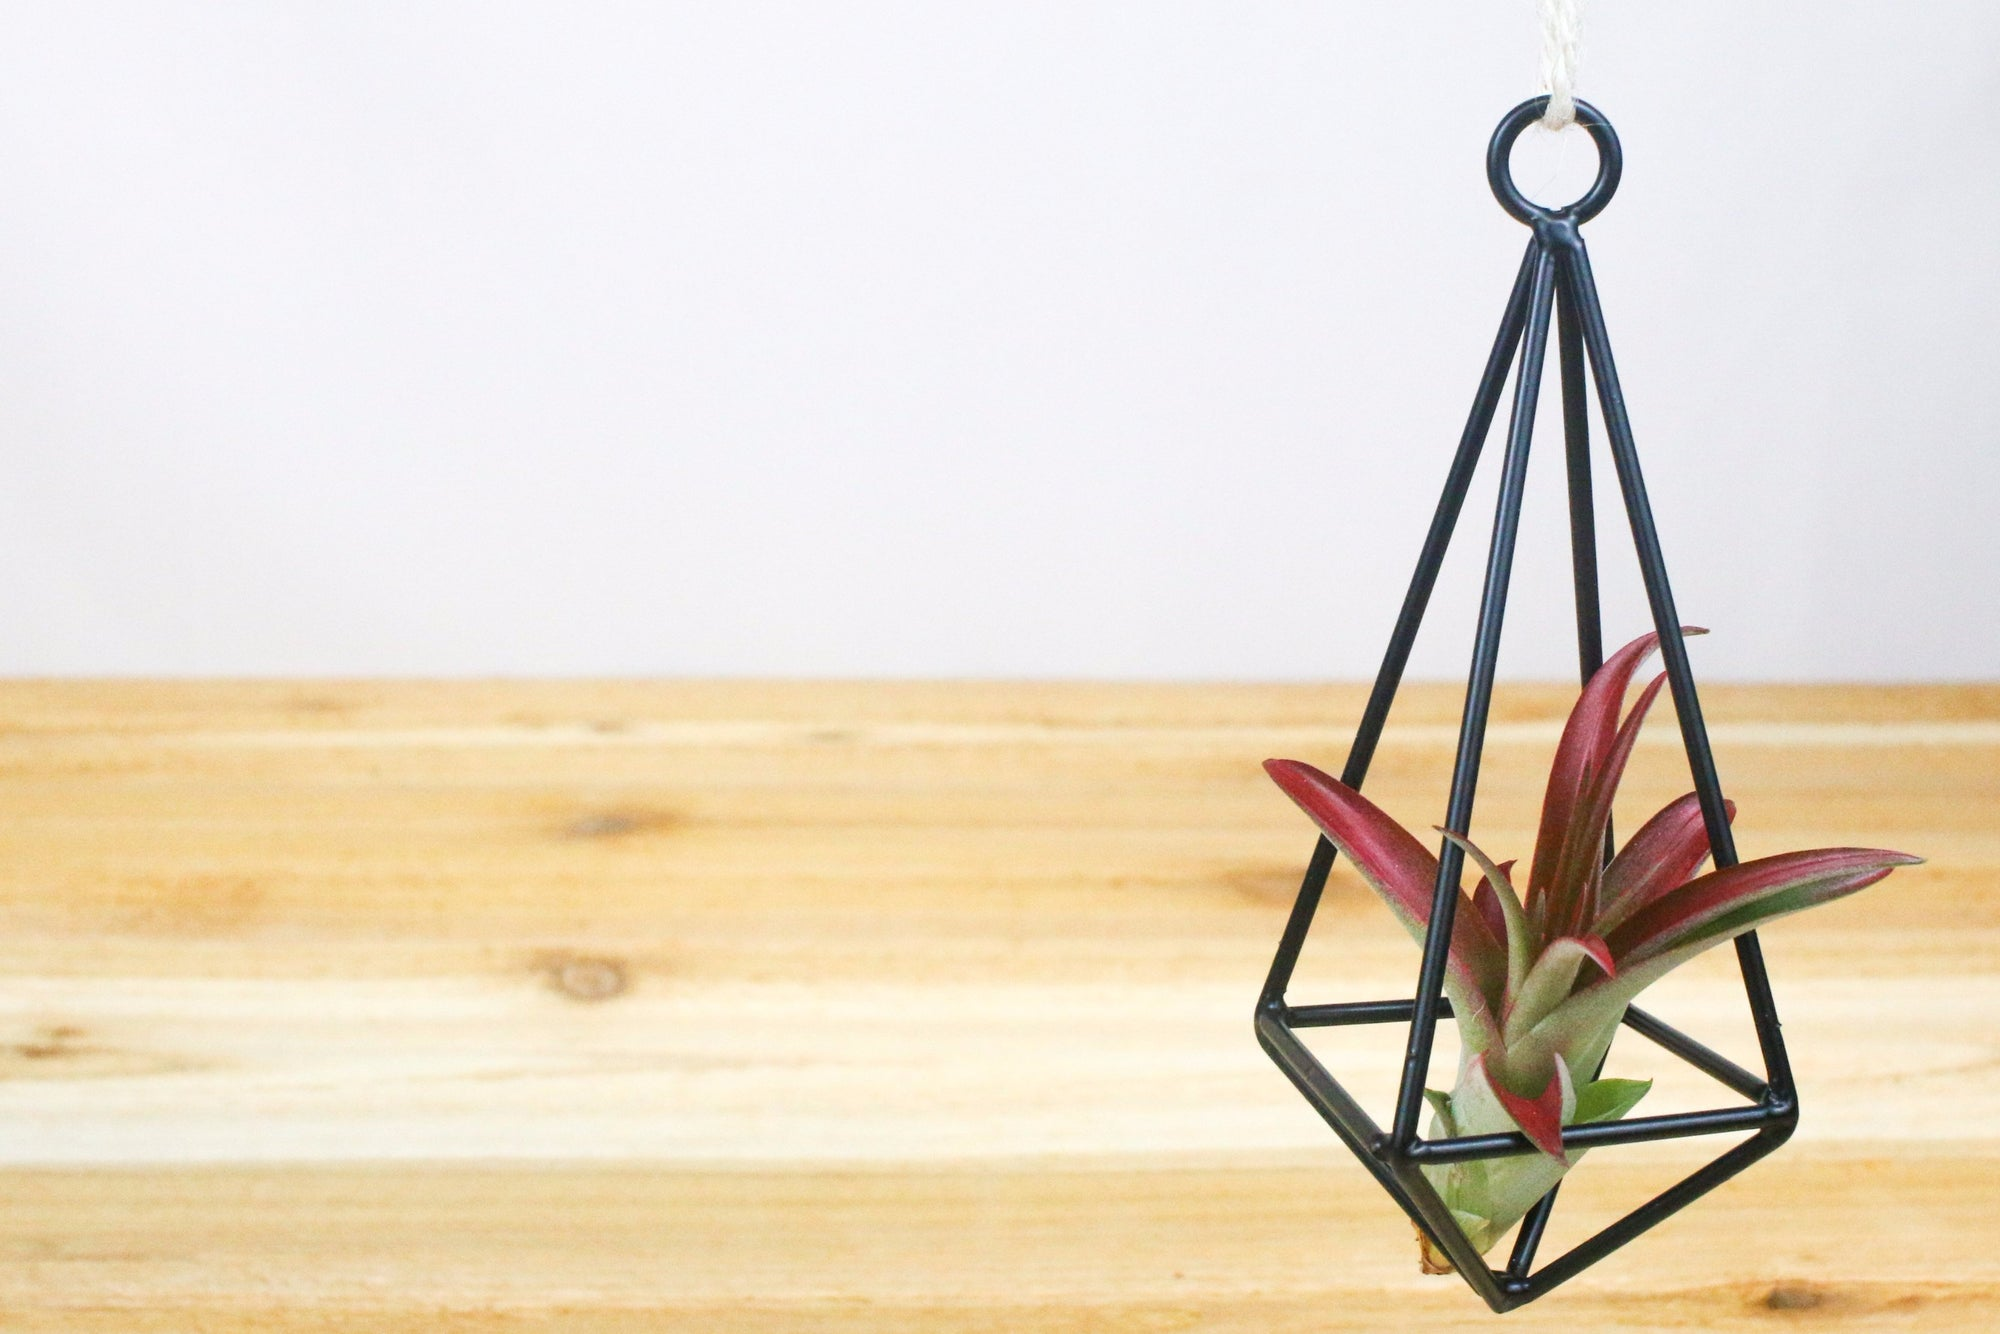 Sale: 40% Off [6 or 12 Pack] Hanging Metal Pendants with Assorted Air Plants from AirPlantShop.com